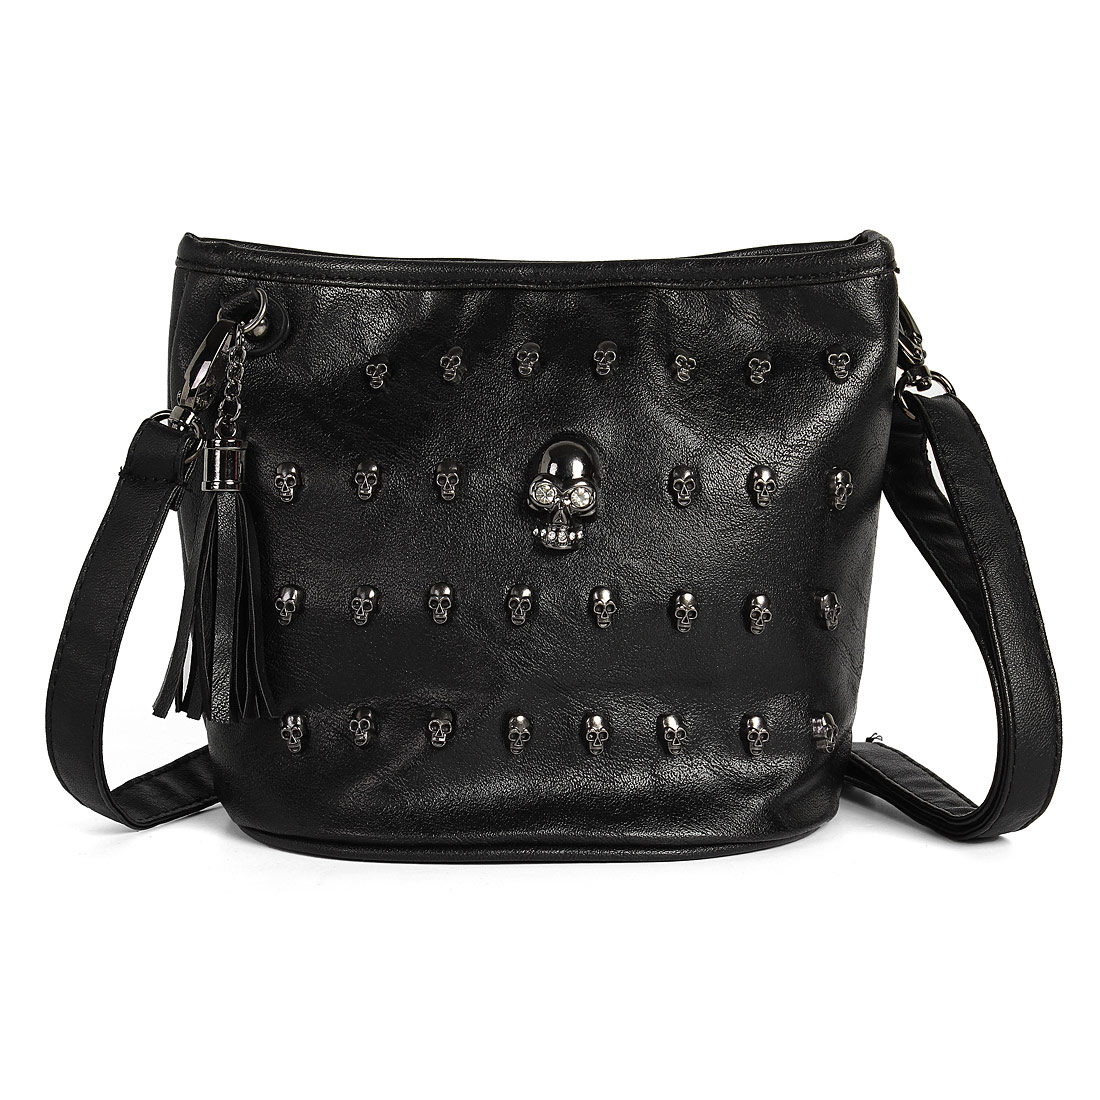 Skull Studs Cool Punk Leather Goth Tassels Messenger Shoulder Tote Handbag Bag